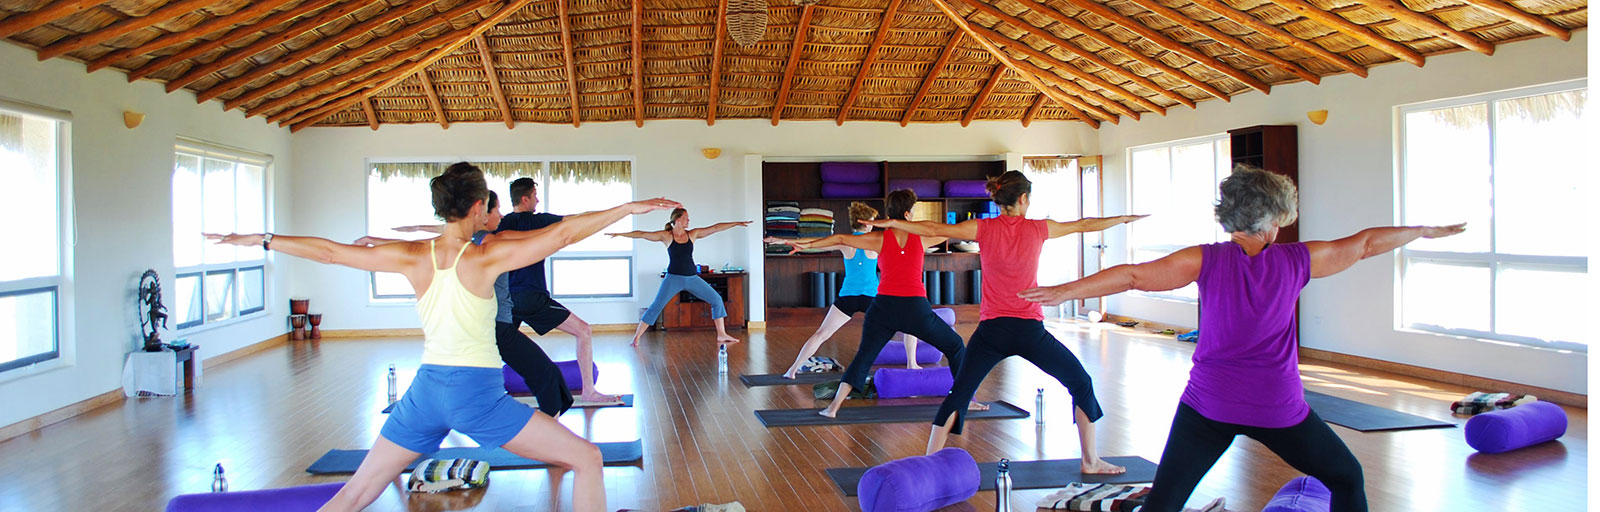 Mexico Yoga Retreat Center in Baja: Yoga Class in the Sun Studio